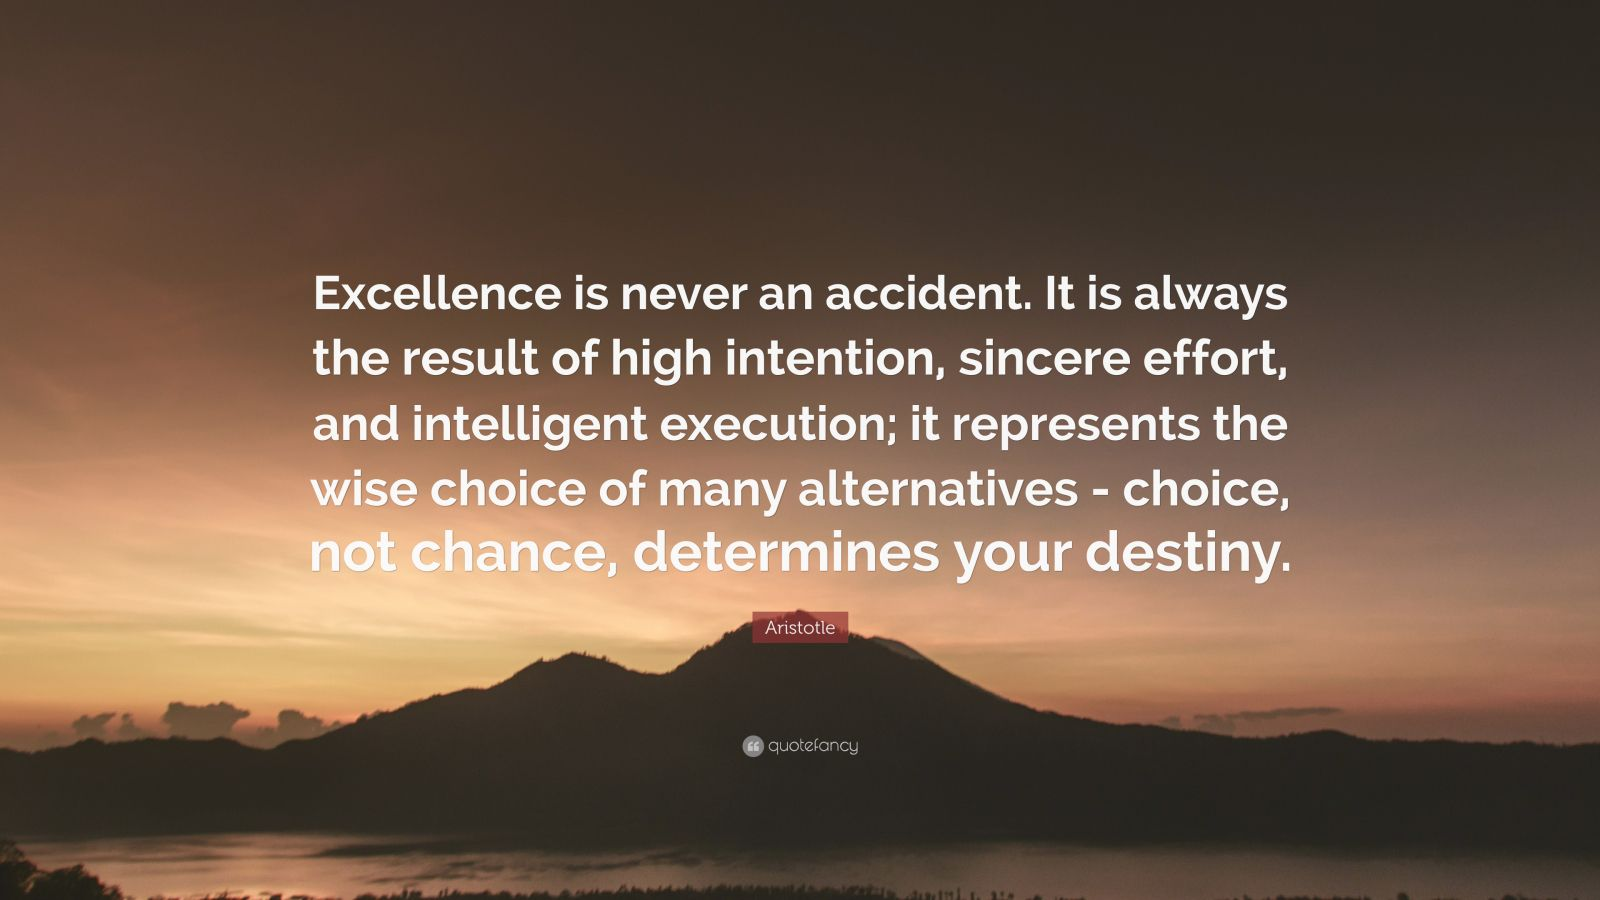 Persistence Quotes Wallpapers Aristotle Quote Excellence Is Never An Accident It Is